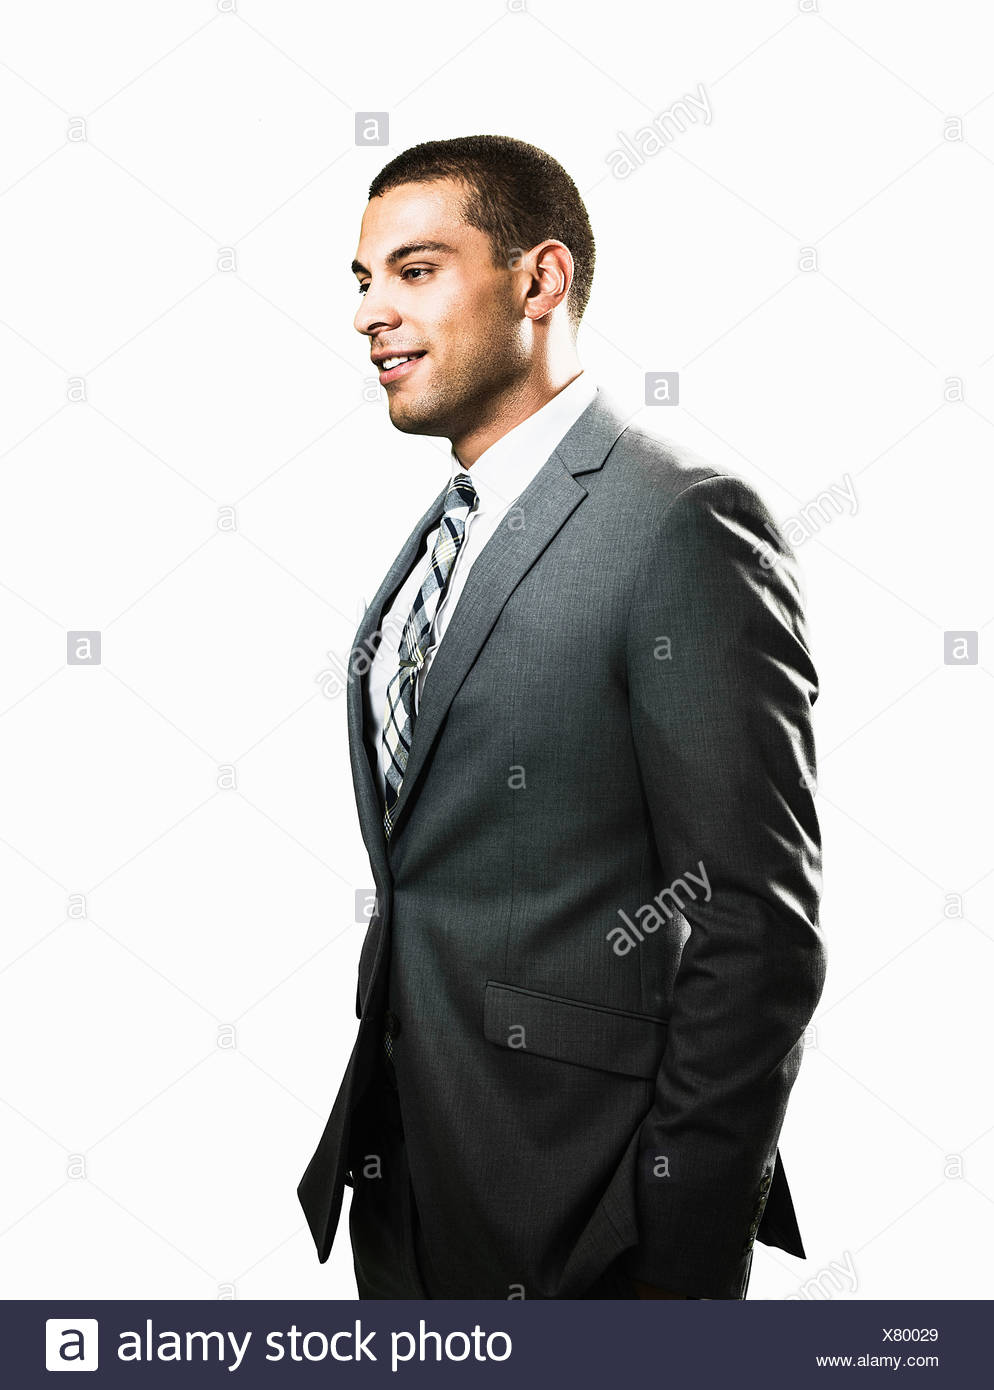 Businessman with hands in pockets - Stock Image